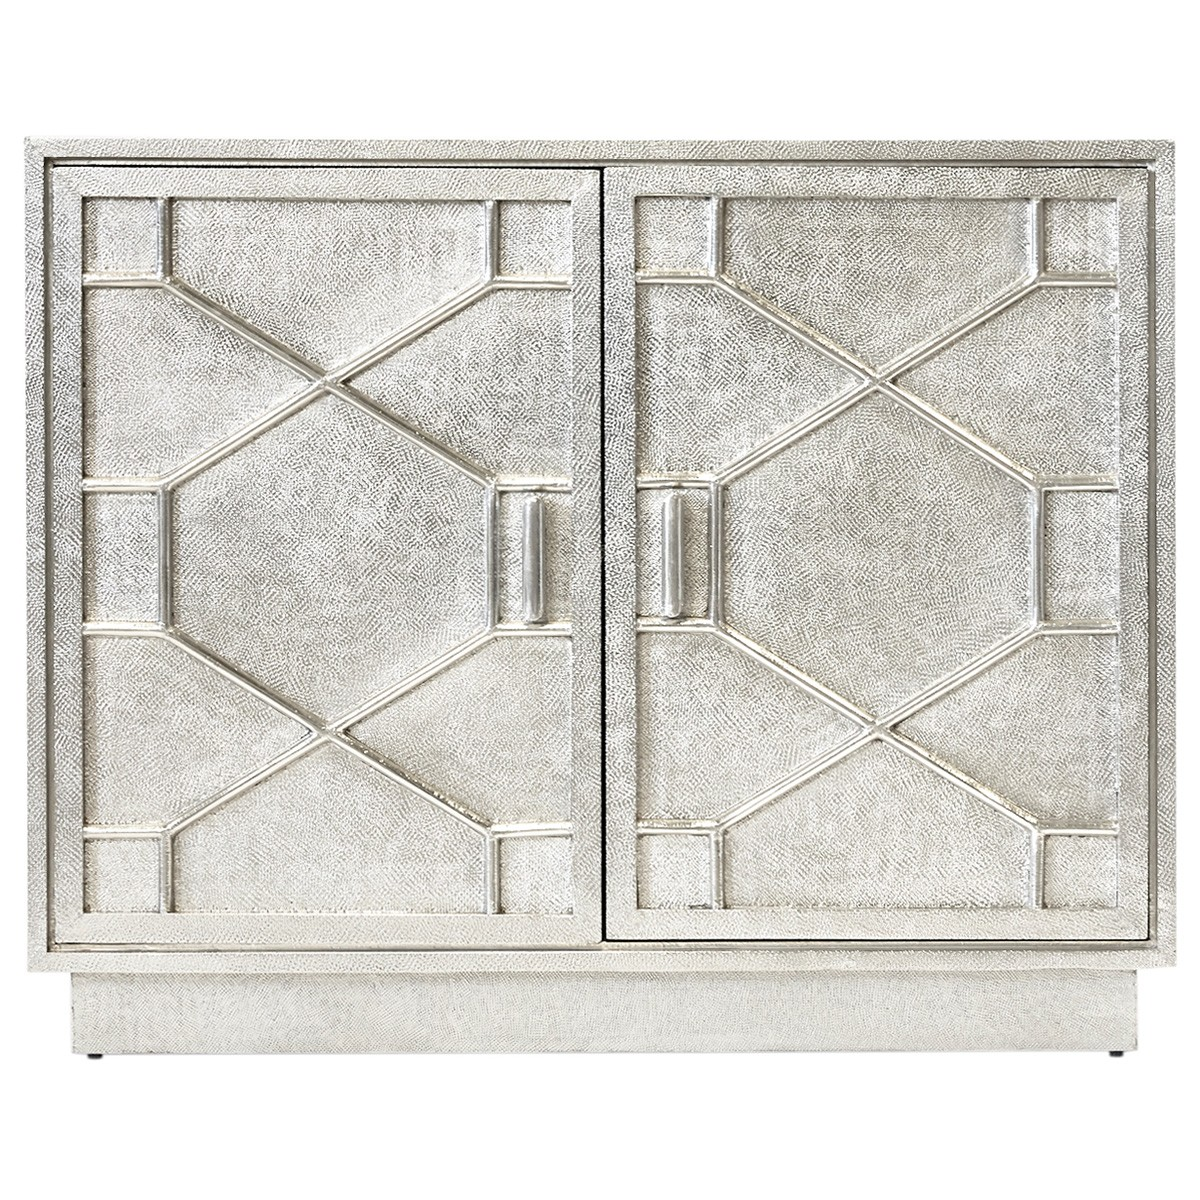 Preston Handcrafted Nickel 2 Door Cabinet